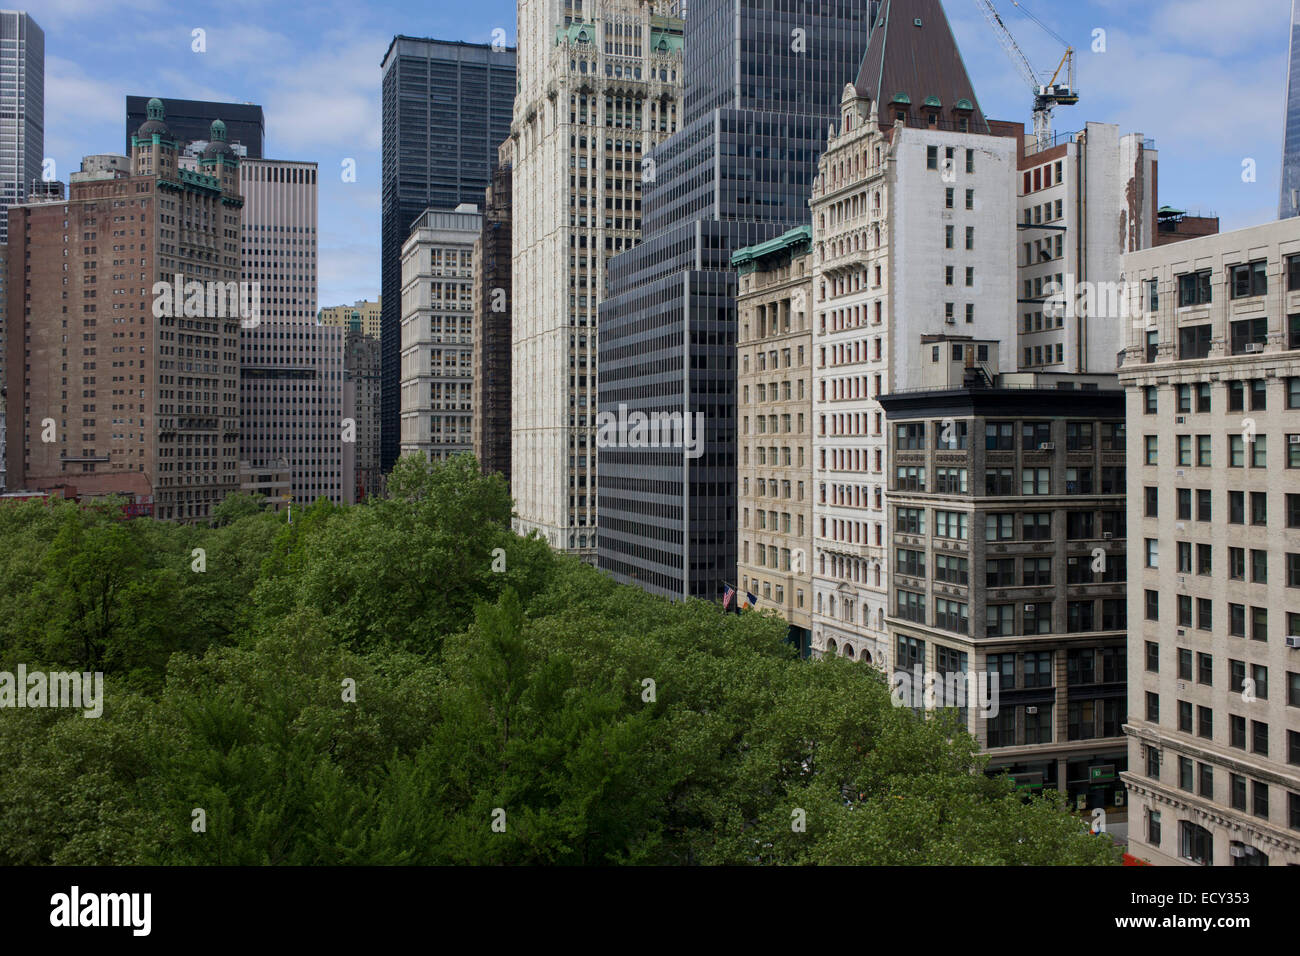 Wide cityscape of skyscrapers looking across Broadway in Manhattan, New York City. - Stock Image